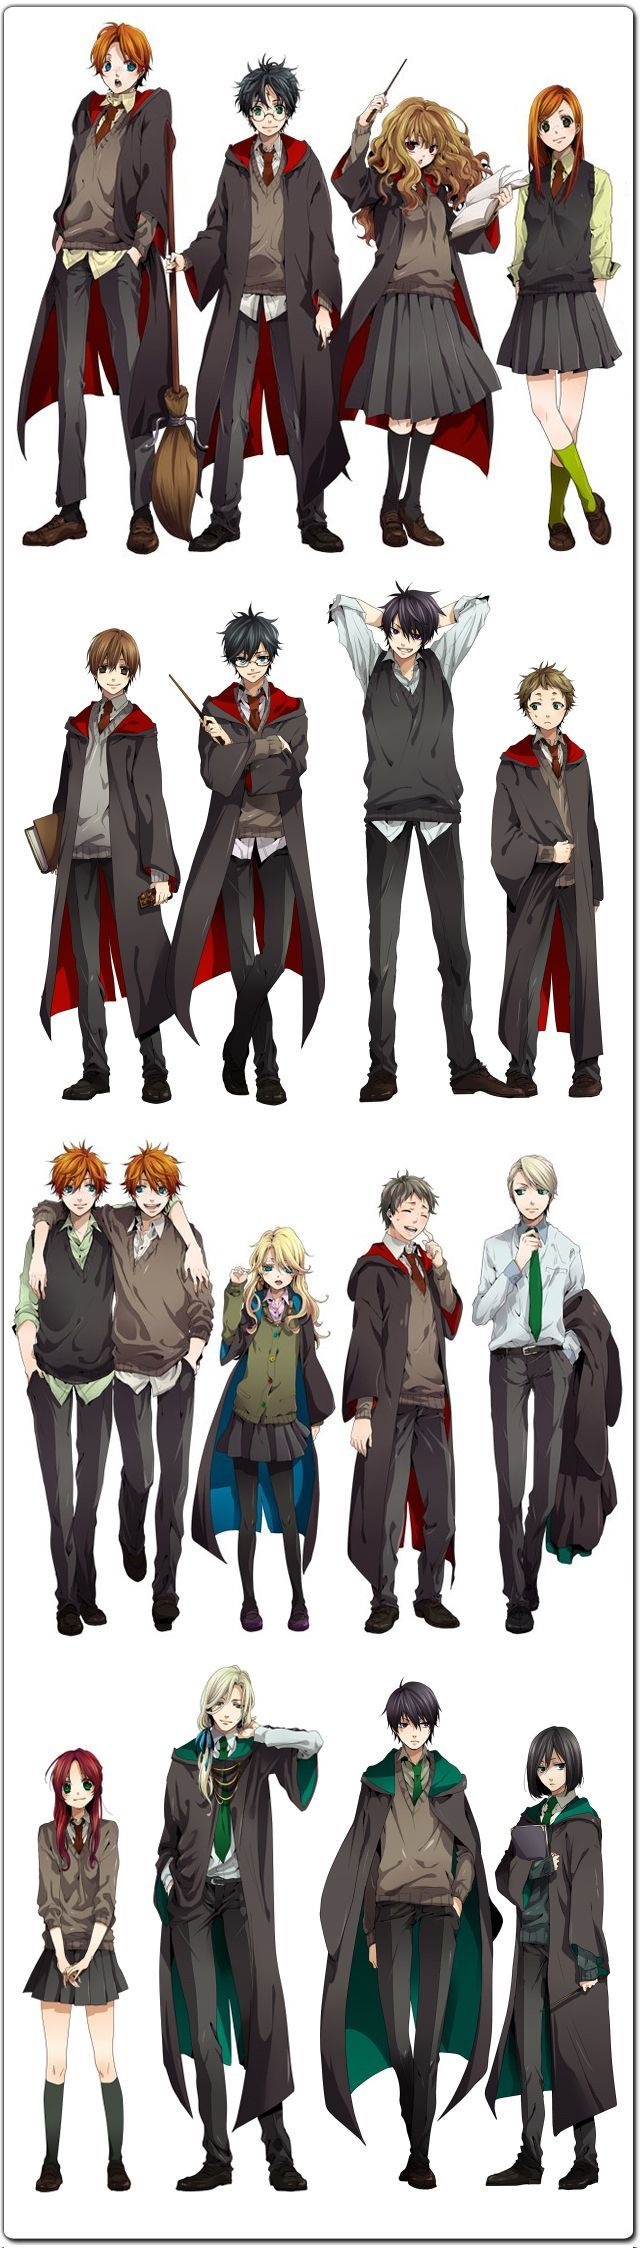 GoBoiano The Harry Potter Cast Reimagined as Anime